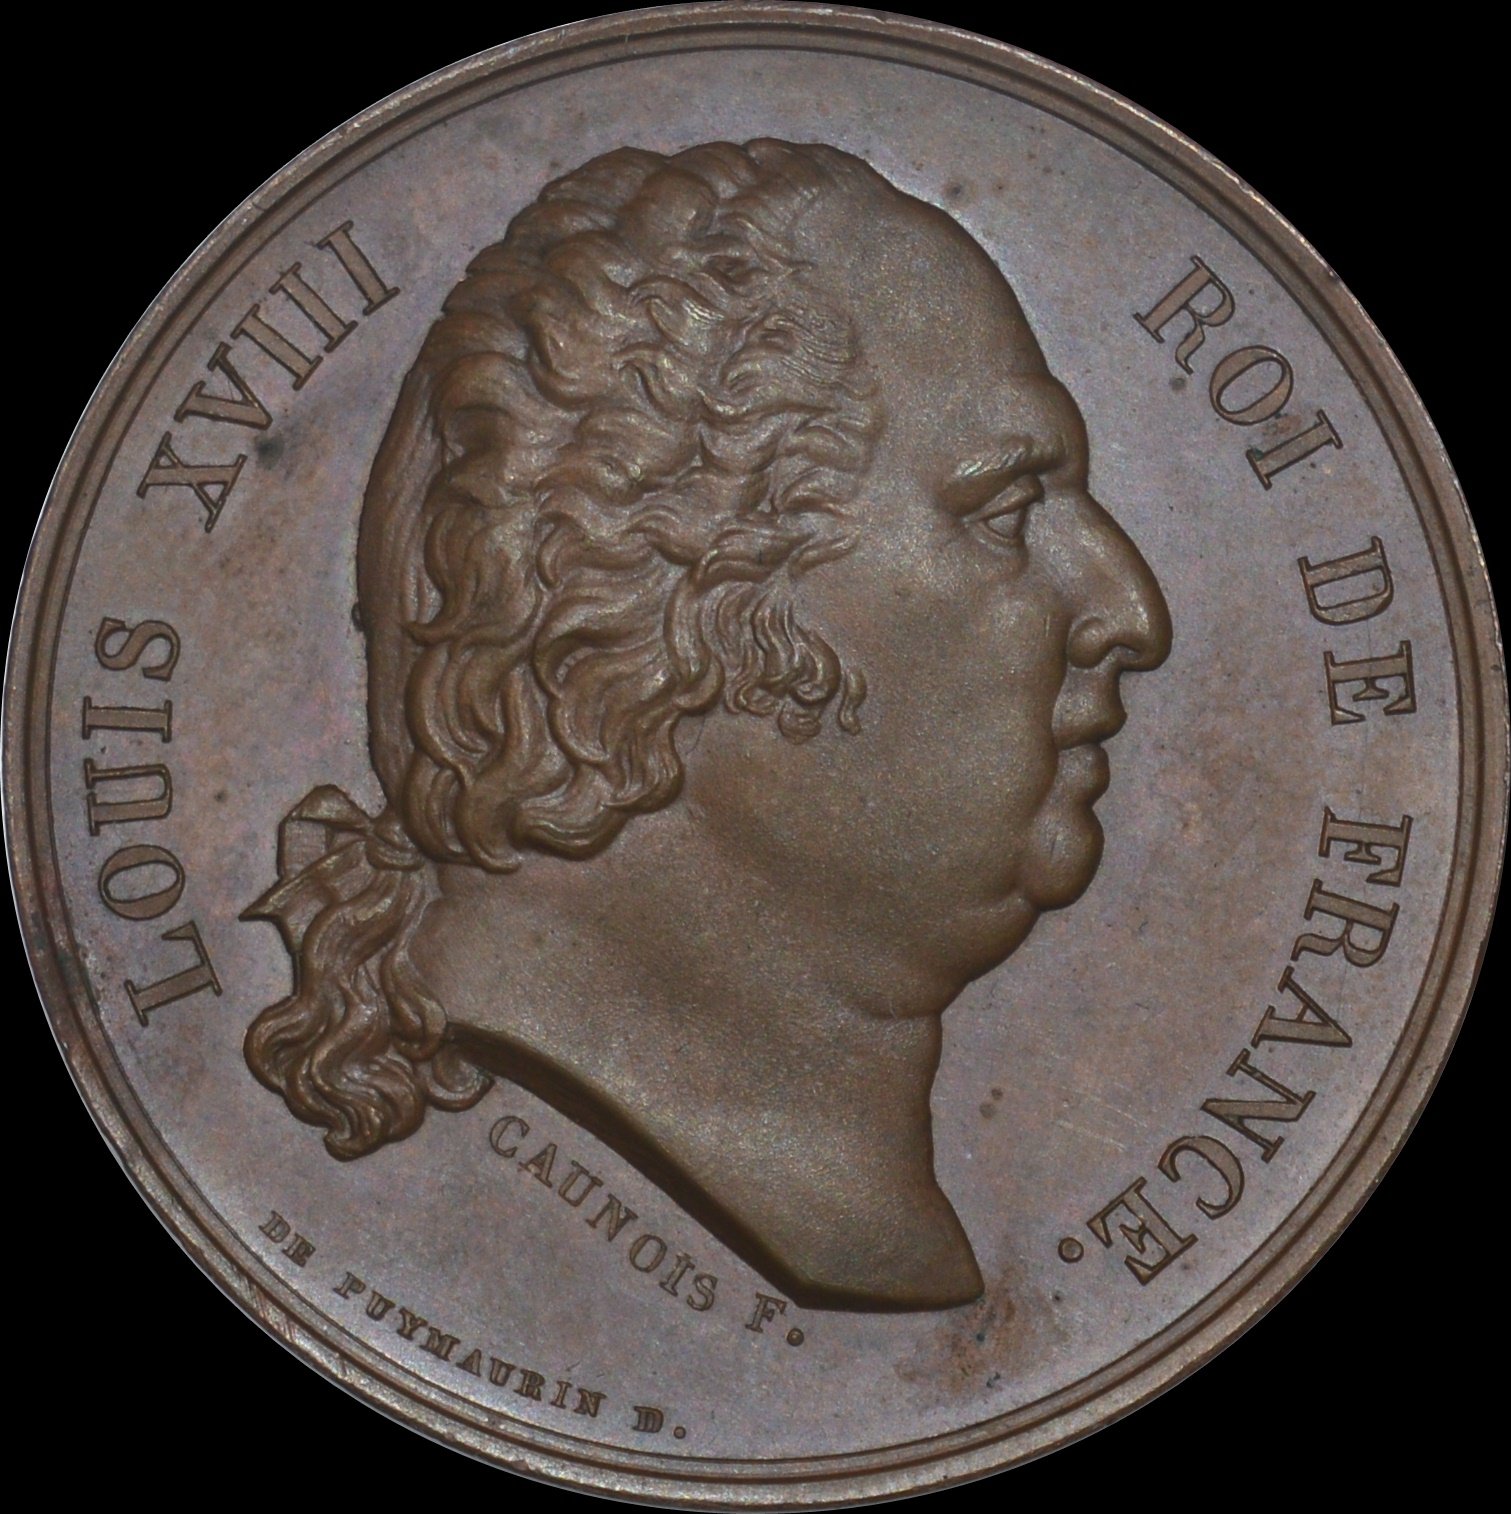 Louis XVIII - 1824 Death of the King medal by Puymaurin